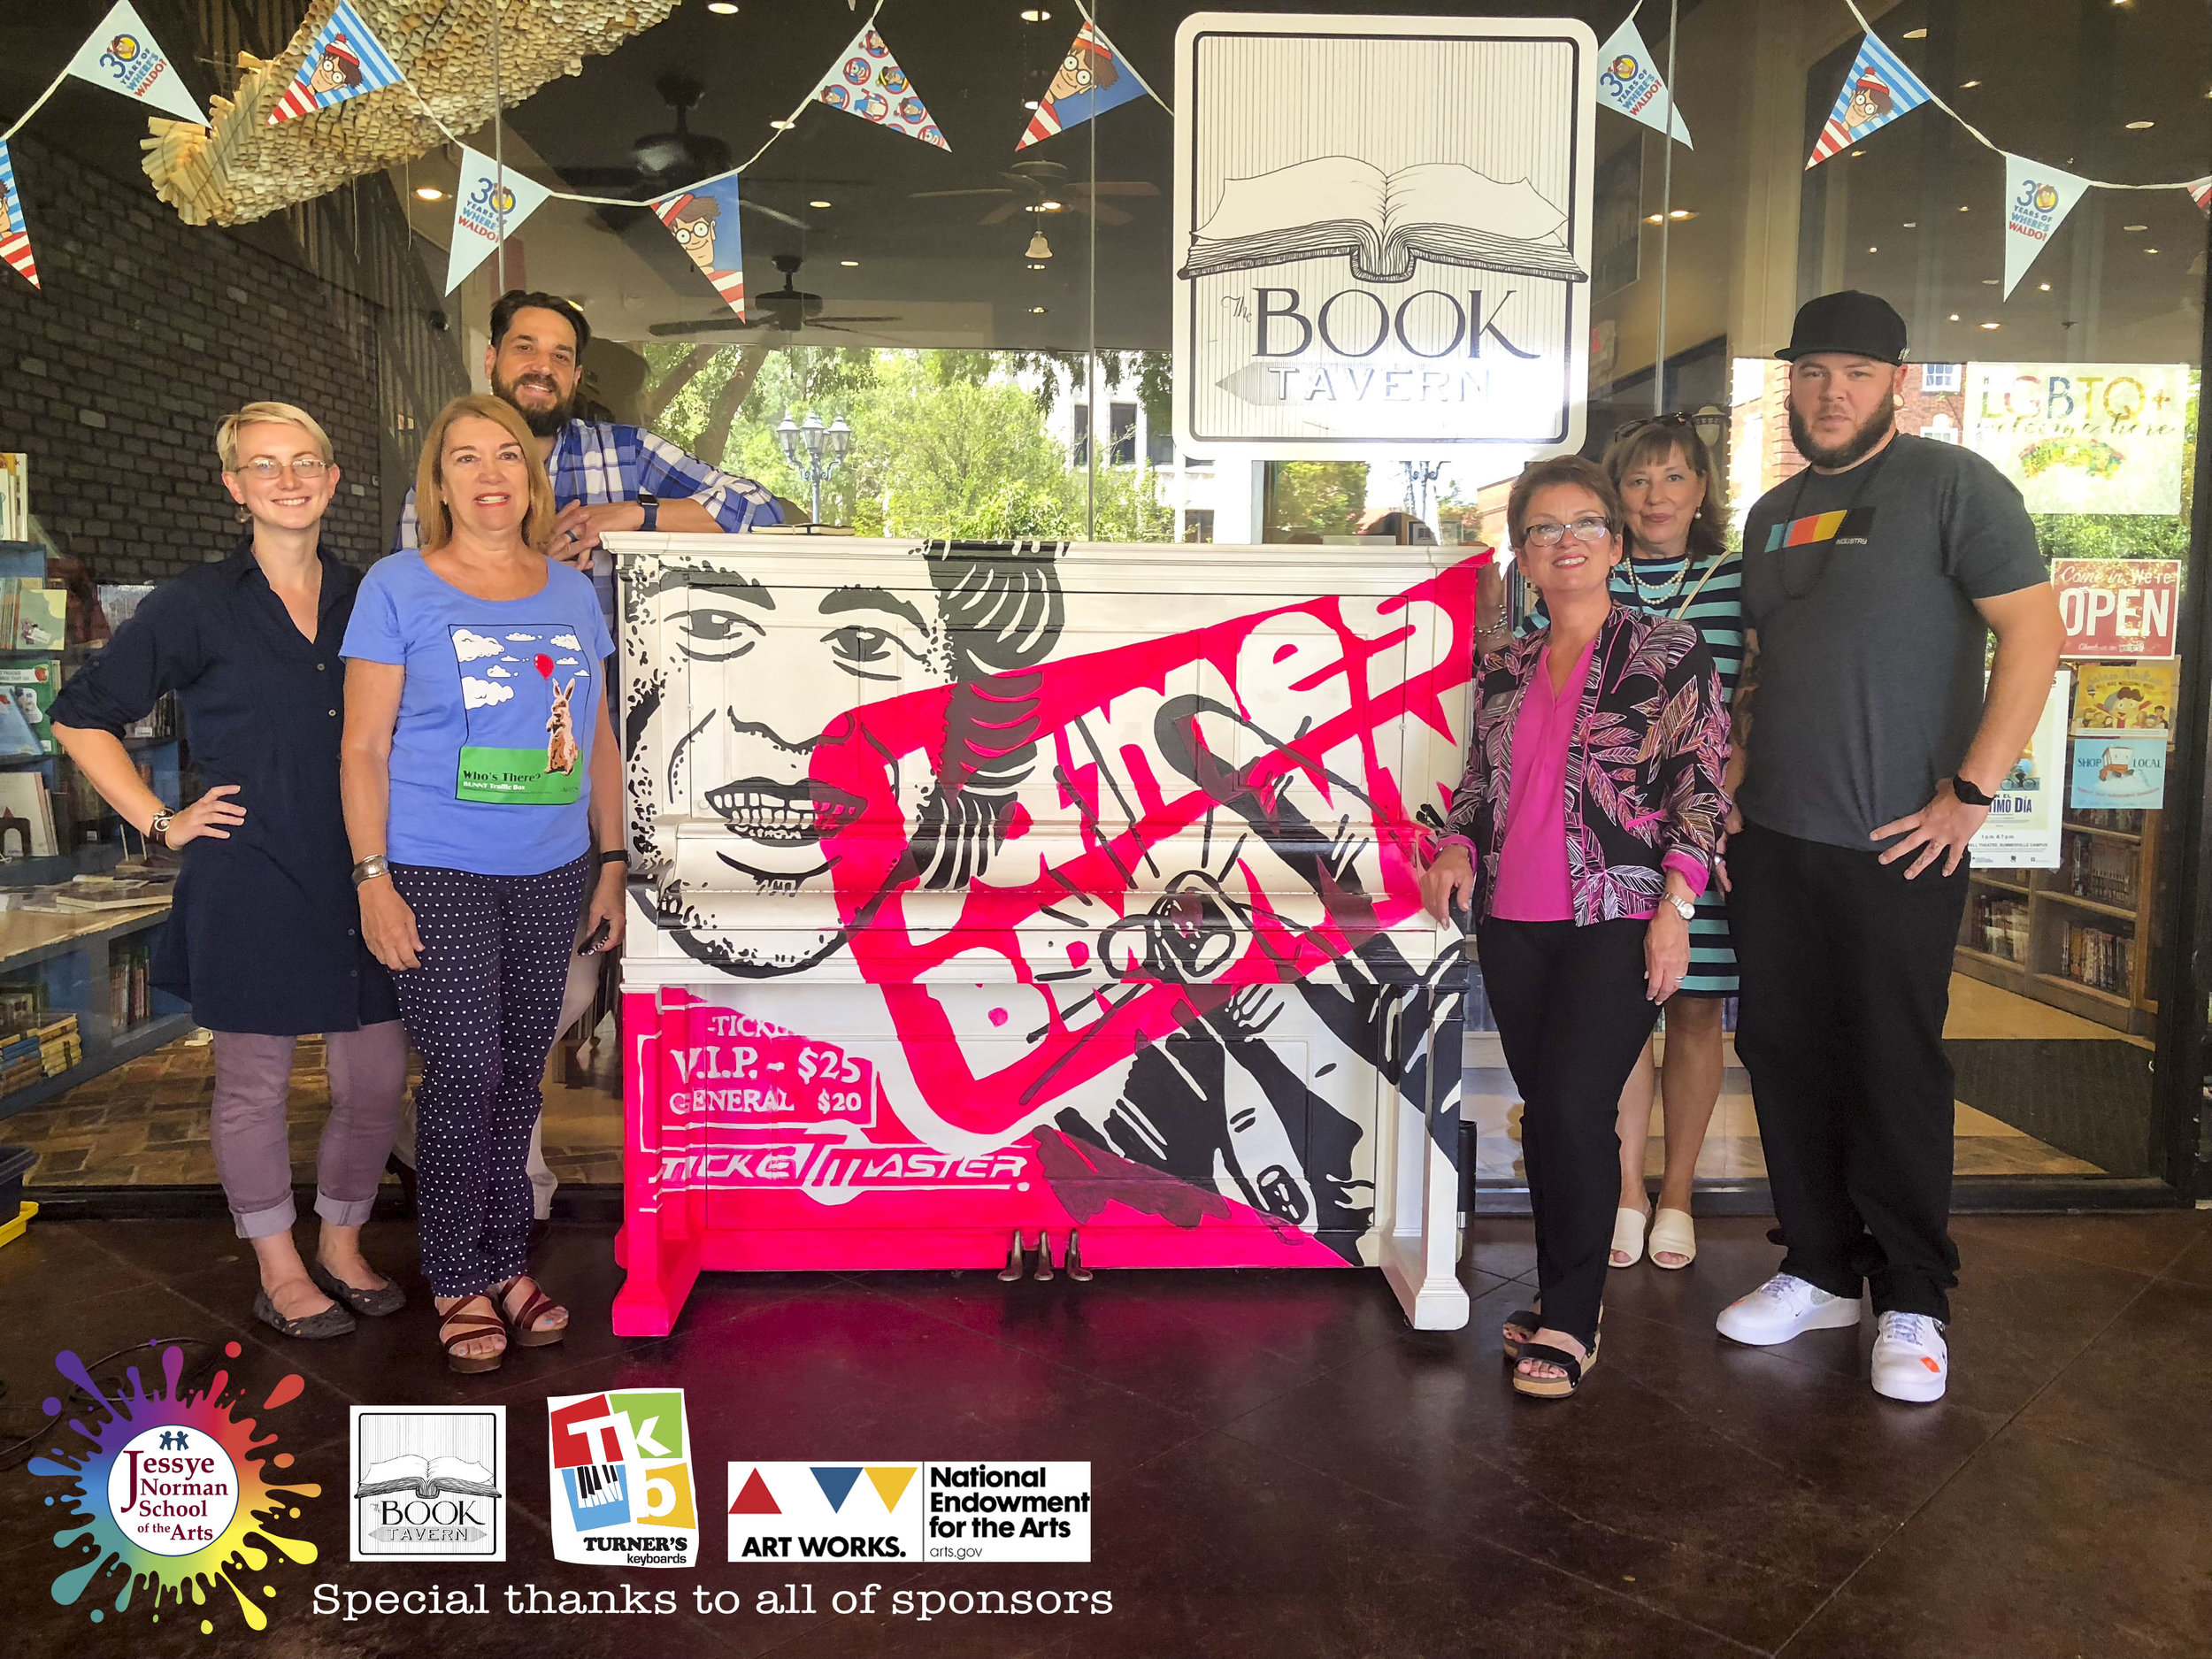 Pictured here:  artist Jason craig and some of our supporters of the Painted Piano Project  This painted piano is at the Book tavern location